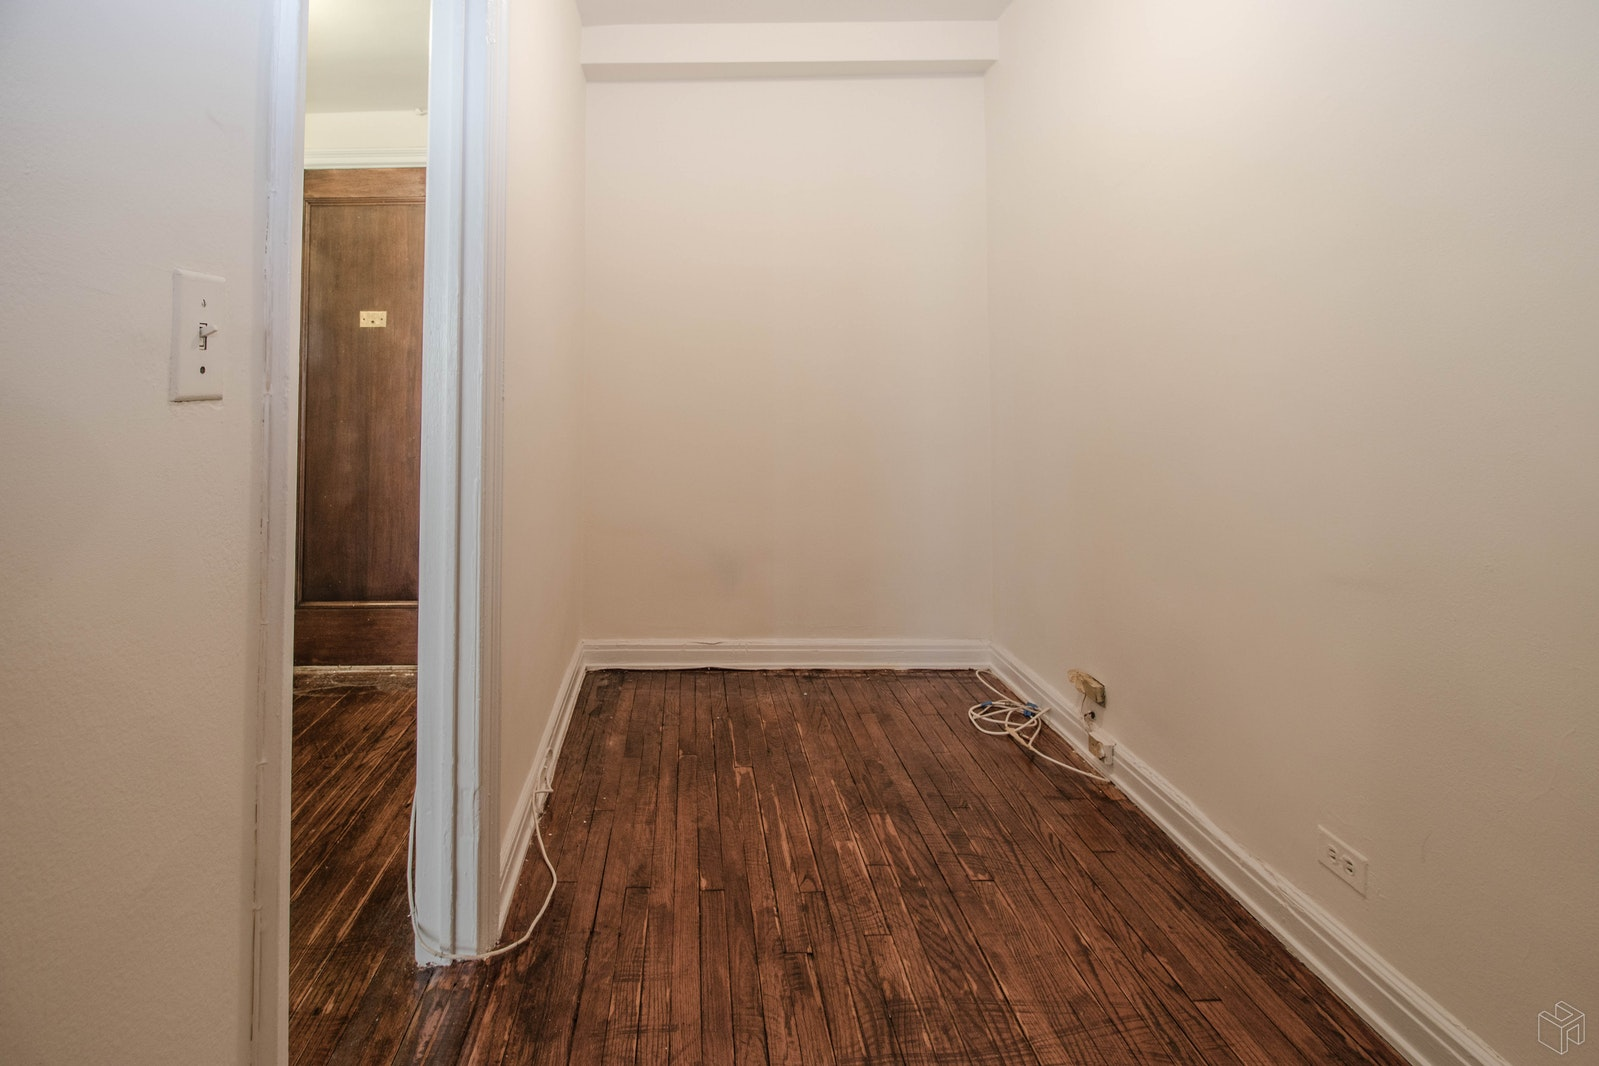 350 West 57th Street 5c, Midtown West, NYC, 10019, Price Not Disclosed, Rented Property, Halstead Real Estate, Photo 6